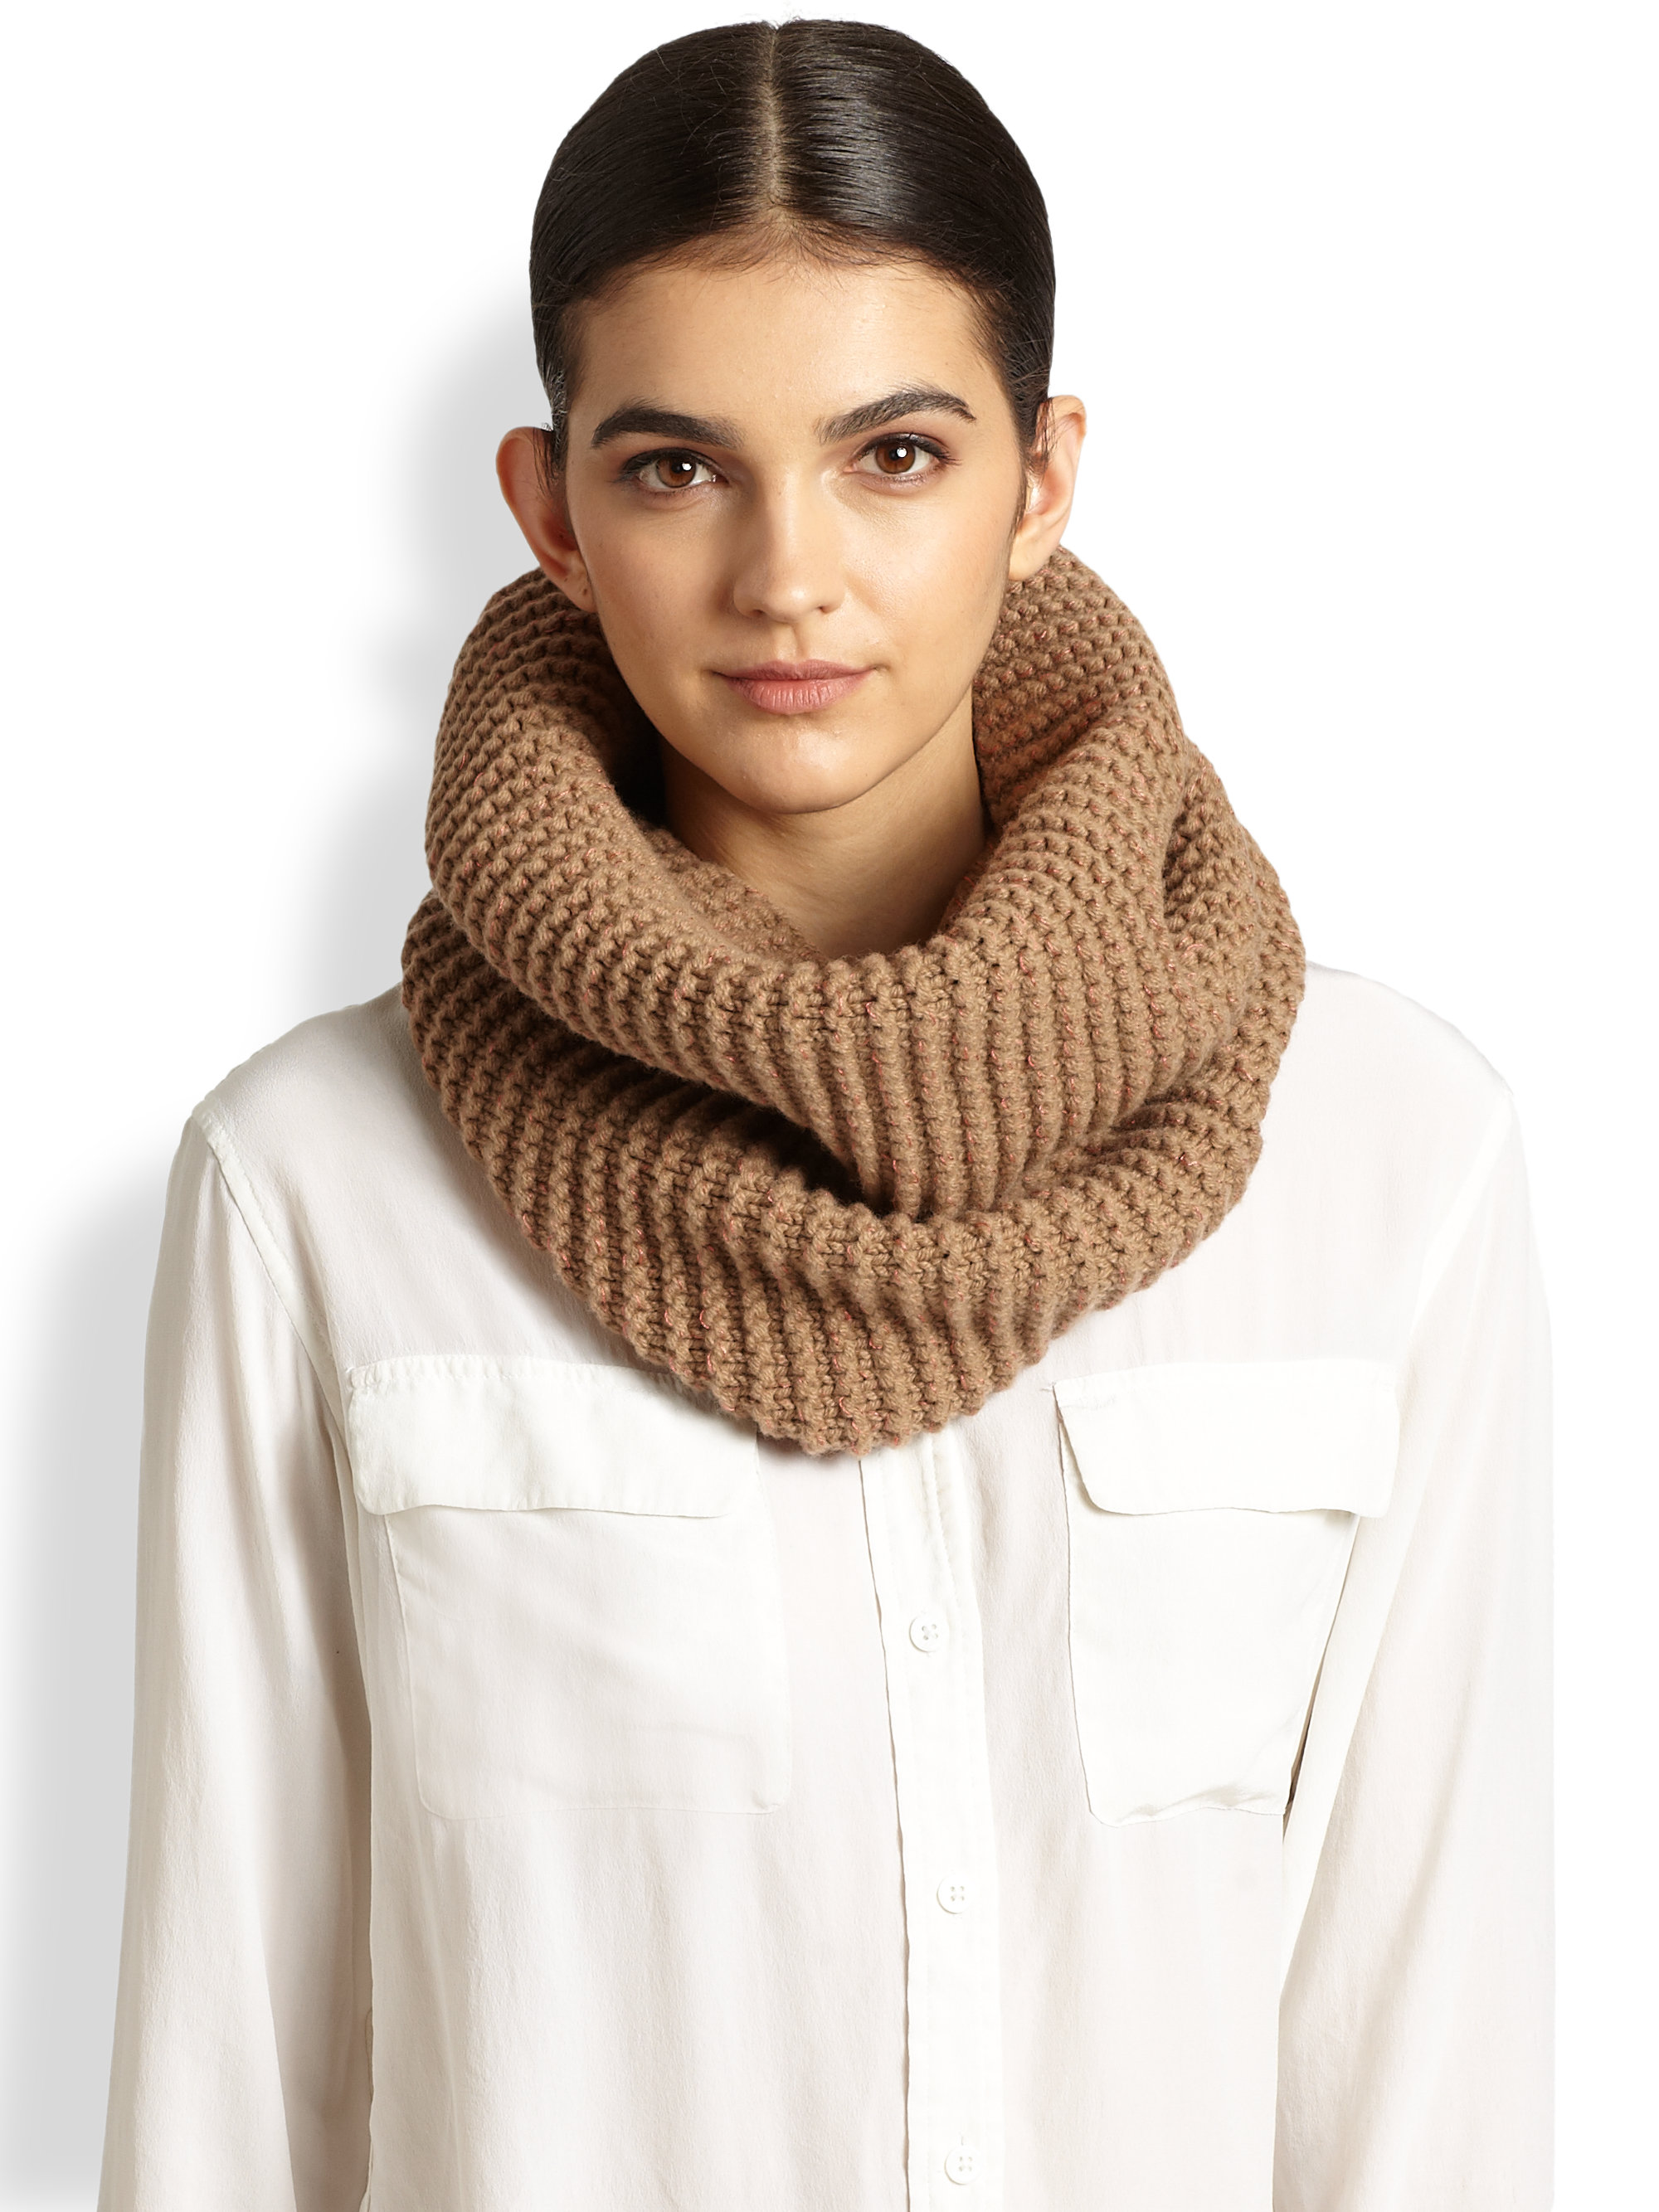 Lyst - Stella Mccartney Knit Circle Scarf in Natural